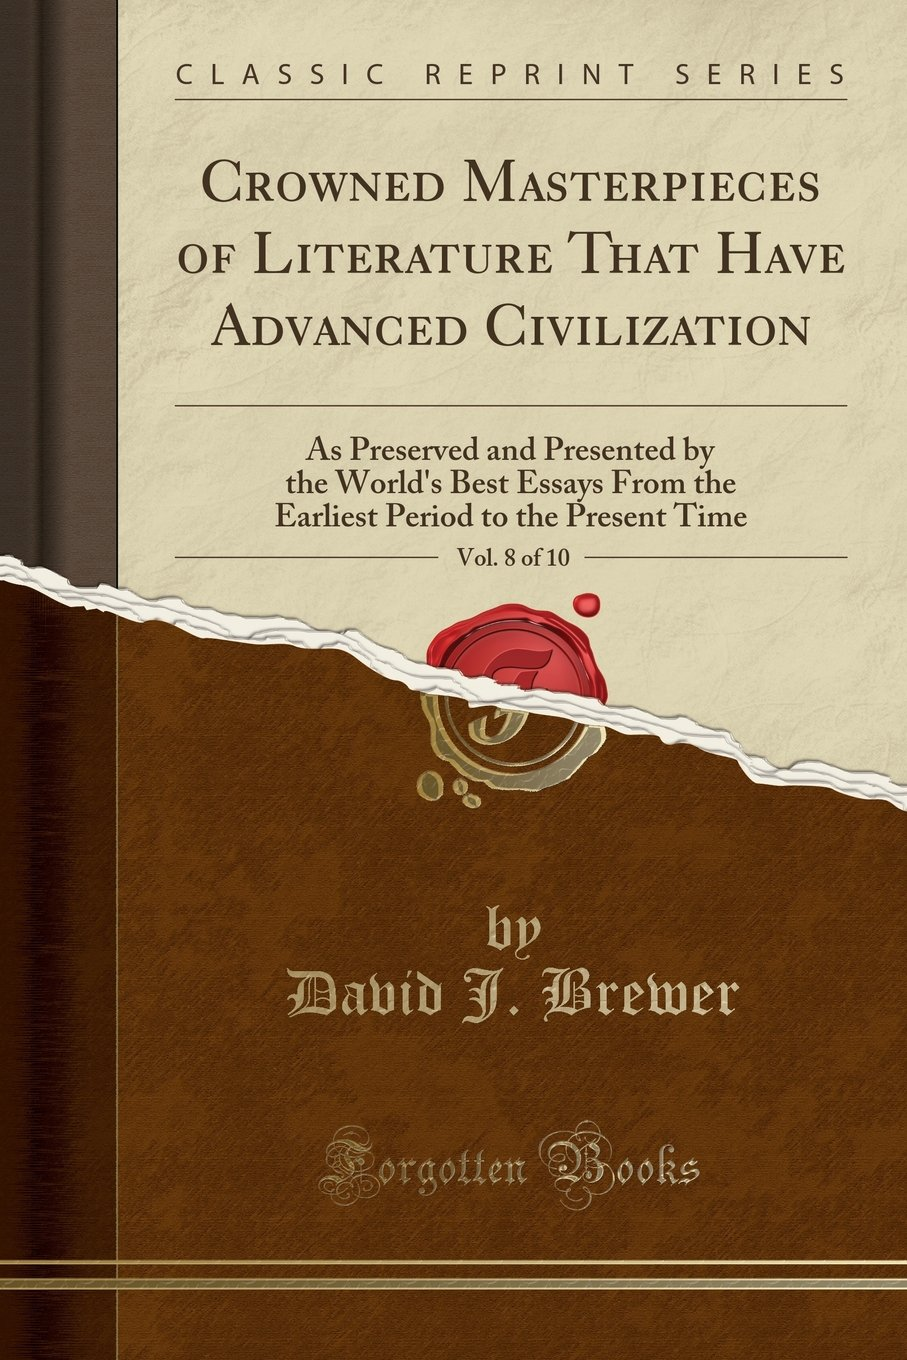 Crowned Masterpieces of Literature That Have Advanced Civilization, Vol. 8 of 10: As Preserved and Presented by the World's Best Essays From the Earliest Period to the Present Time (Classic Reprint) ebook